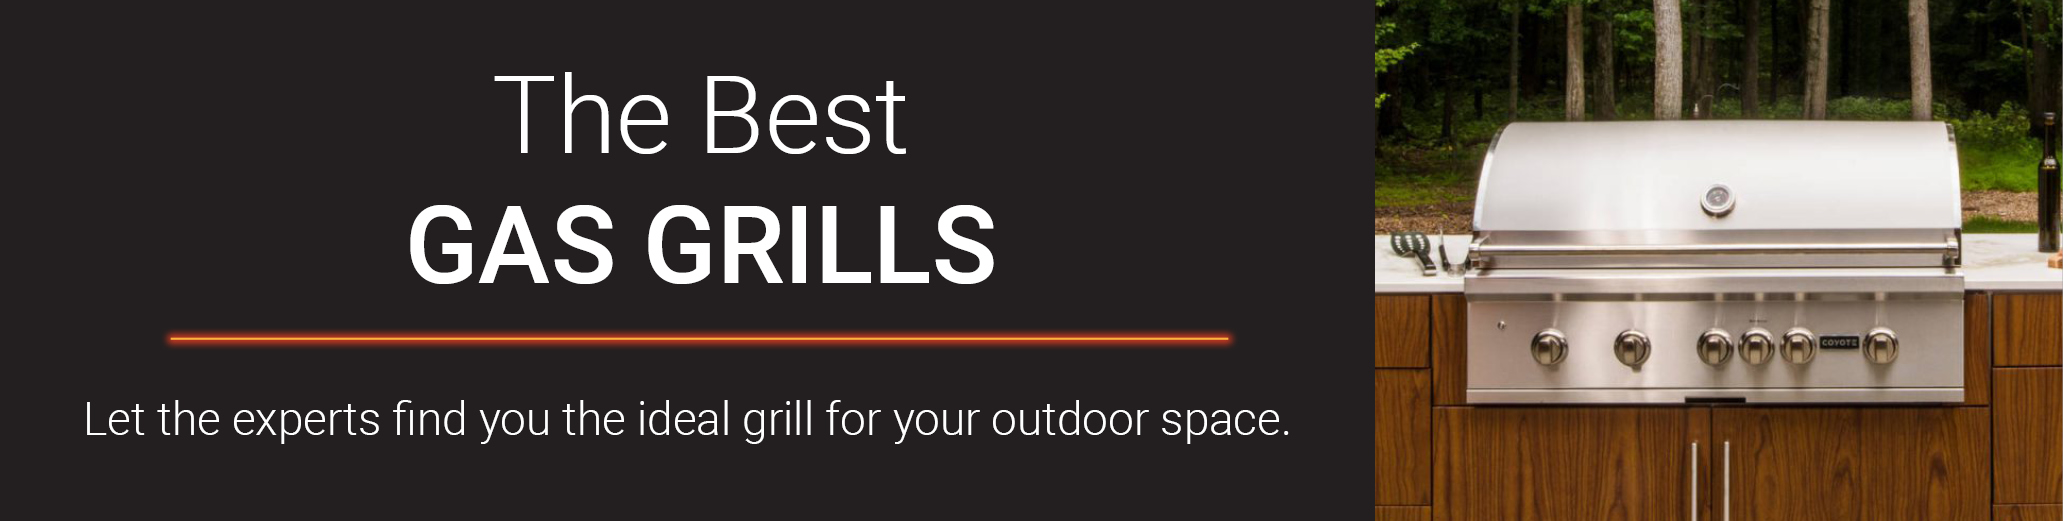 Learn More About The Best Gas Grills